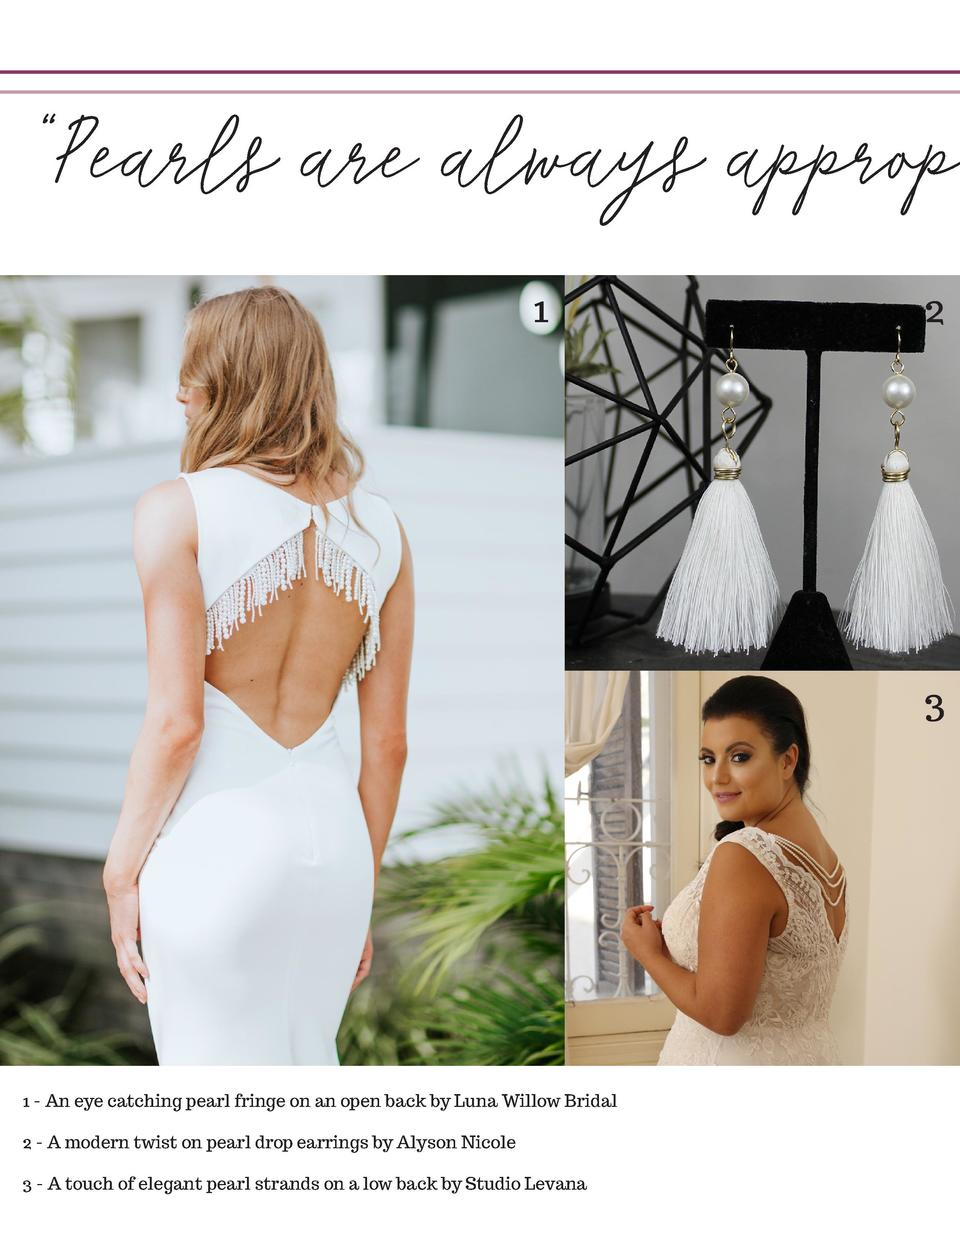 Pearls are always appropr 1  2  3  1 - An eye catching pearl fringe on an open back by Luna Willow Bridal 2 - A modern ...